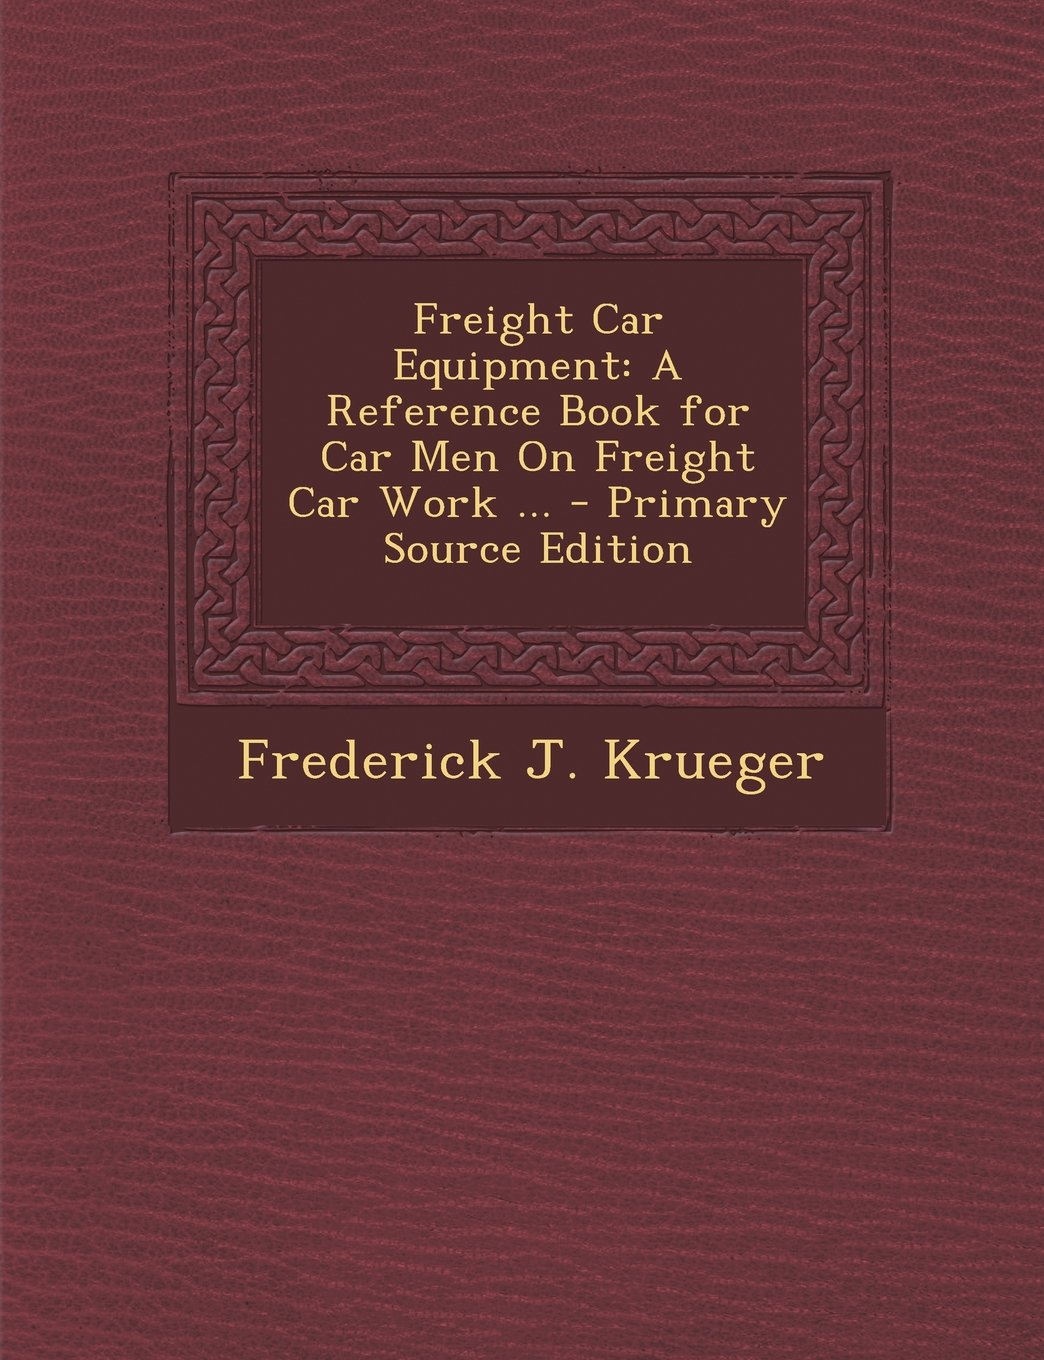 Freight Car Equipment: A Reference Book for Car Men On Freight Car Work ... pdf epub